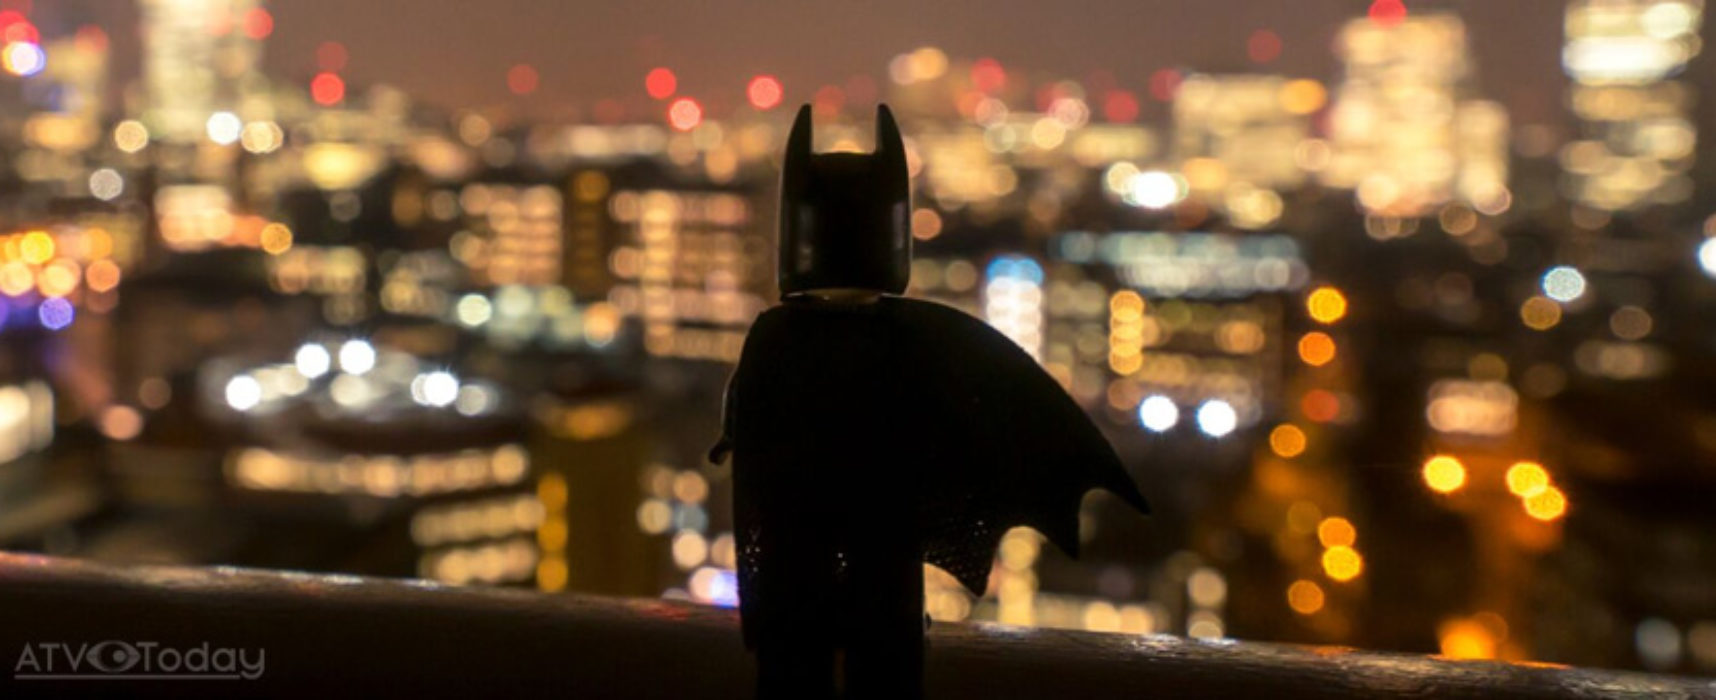 'Lego Batman' takes a day out in London